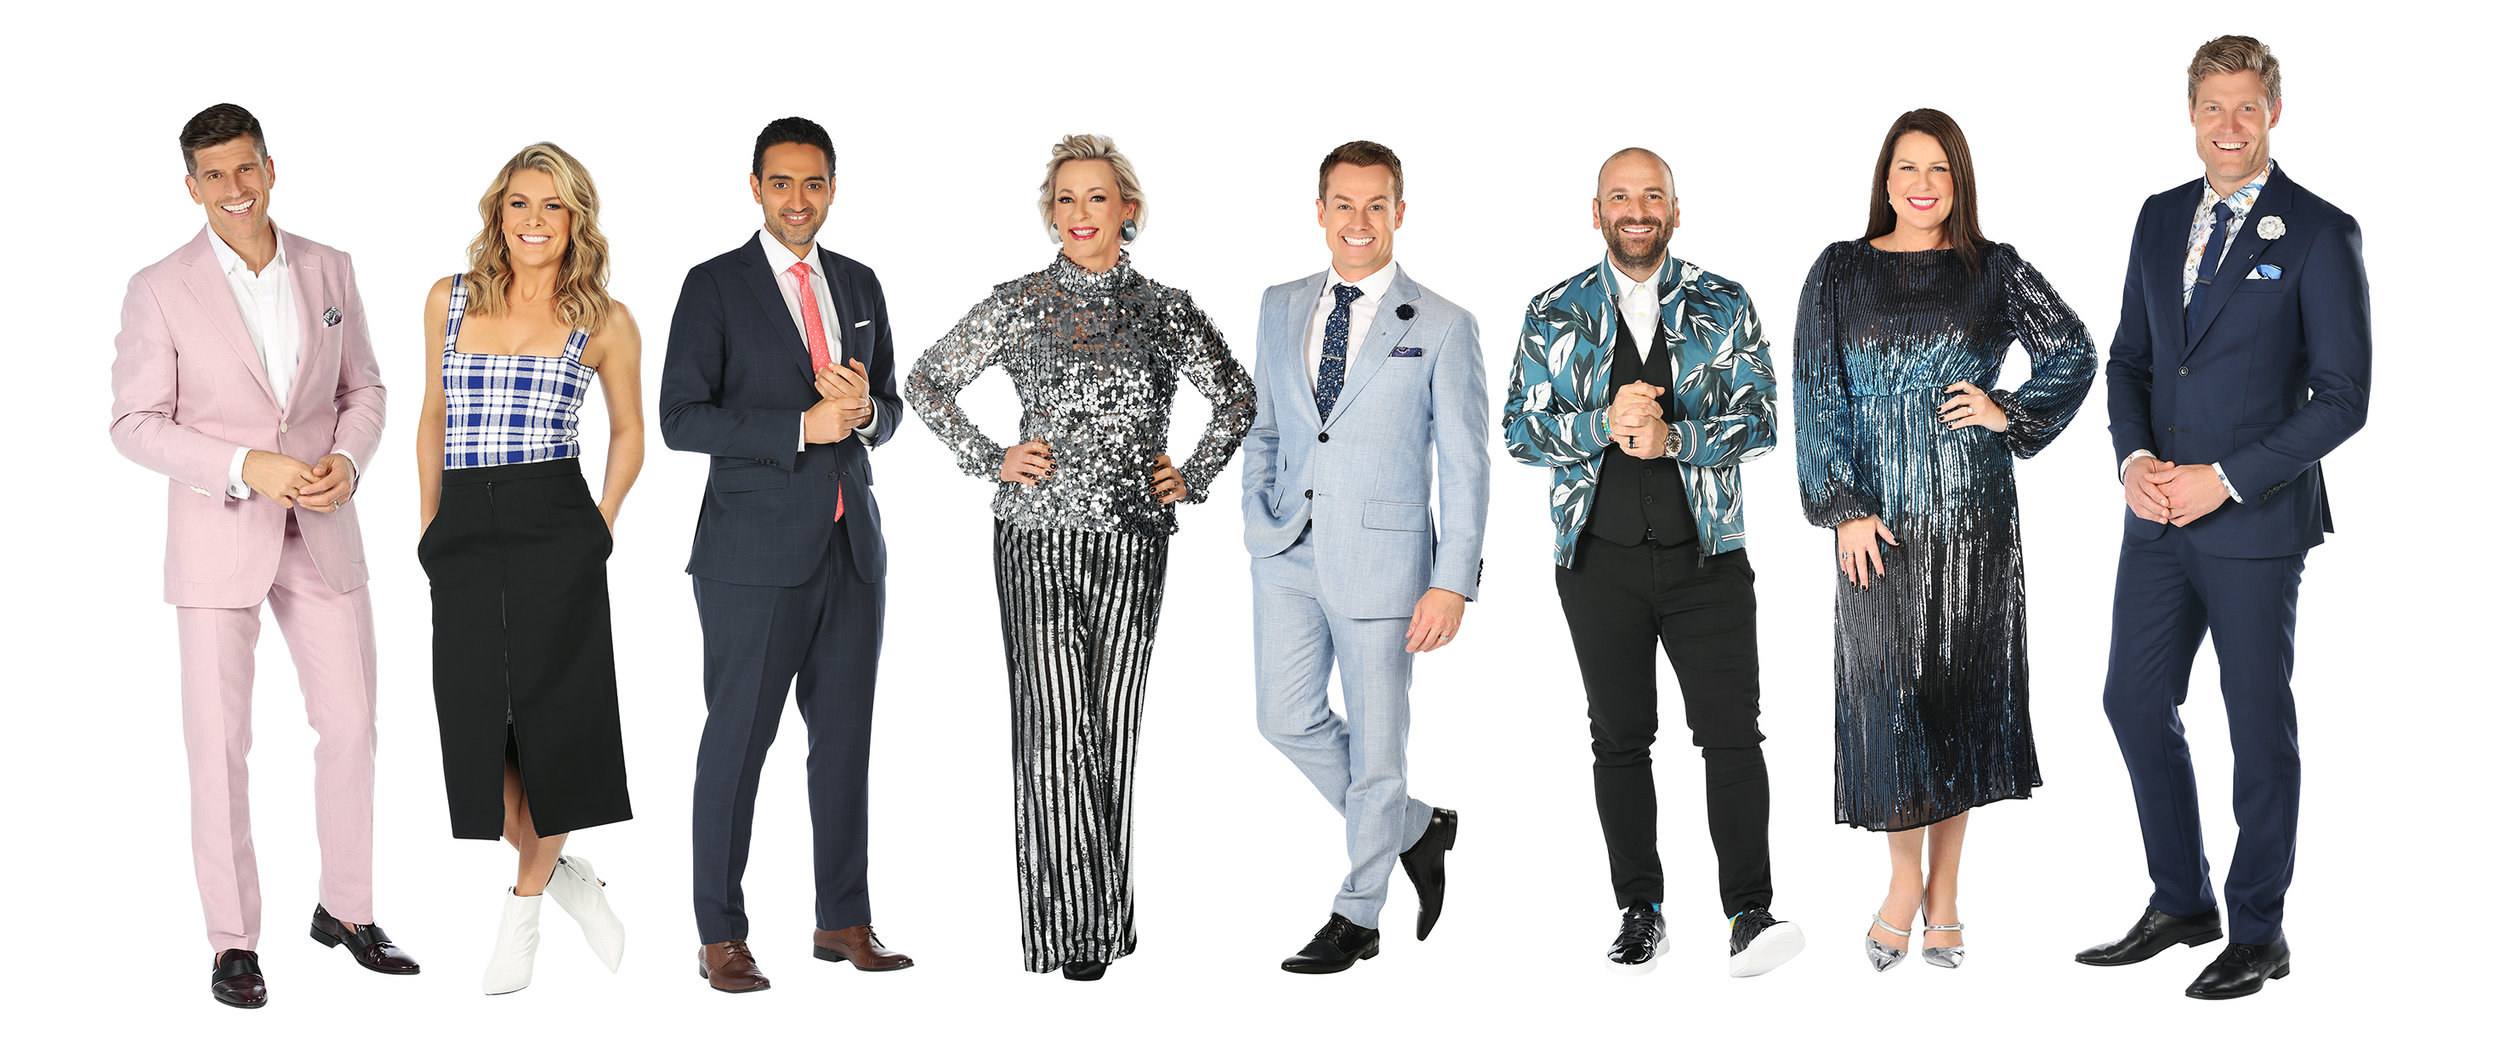 Osher Gunsberg, Nat Bass, Waleed Aly, Amanda Keller, Grant Denyer, George Calombaris, Julia Morris, Chris Brown  Image - Ten